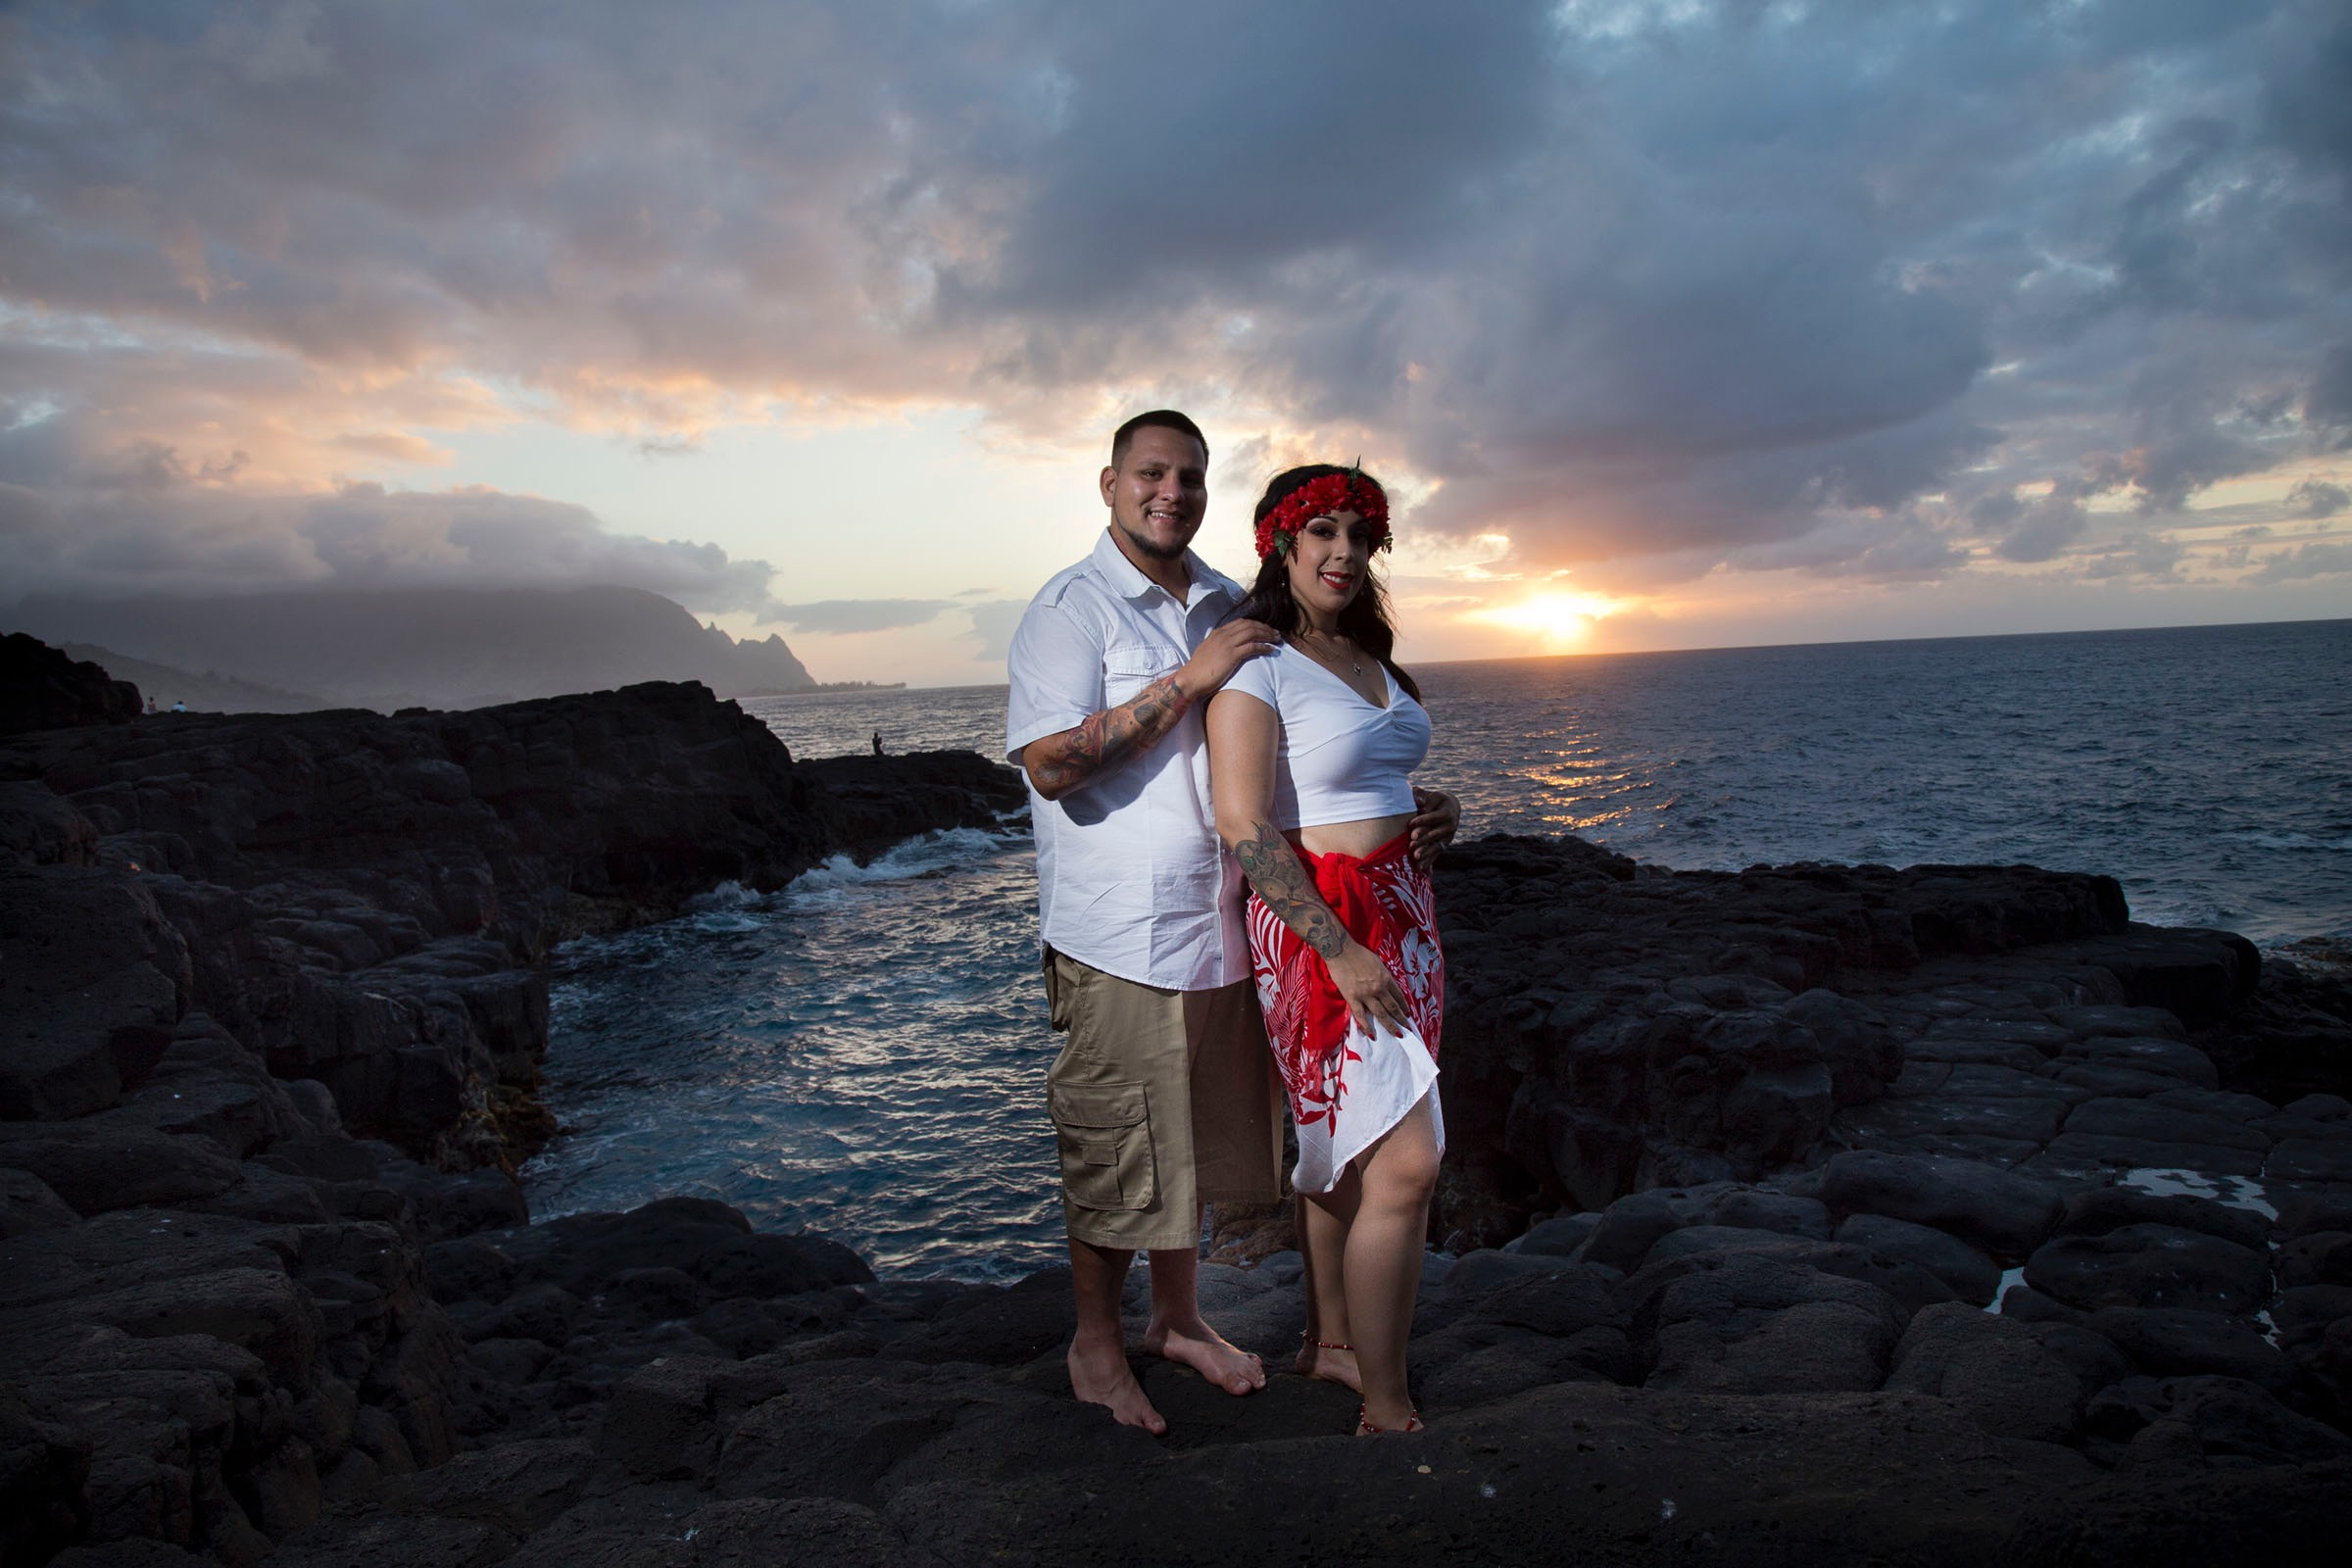 Kauai wedding photographer Difraser 15 Wedding videographer Difraser makes exciting Kauai wedding videos